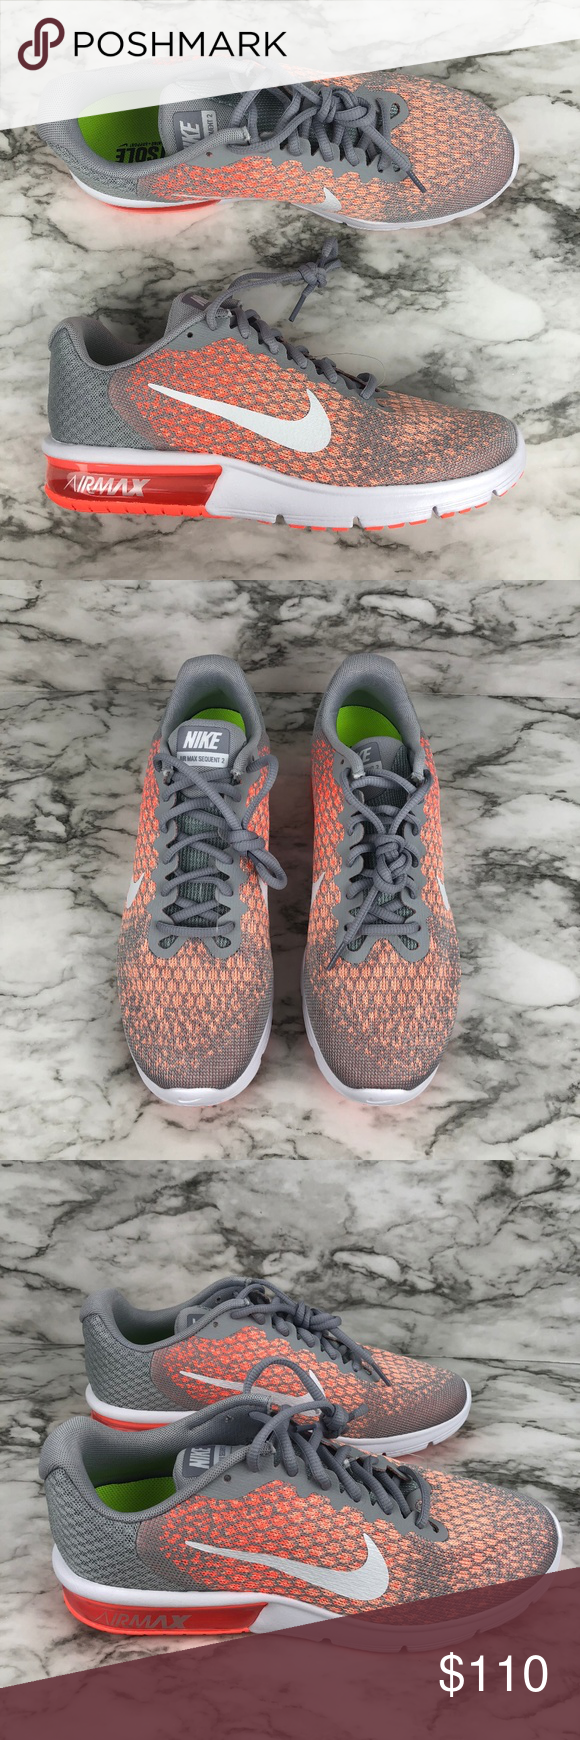 794db1399cb637 I just added this listing on Poshmark  Nike Air Max Sequent 2 Sneakers  Coral